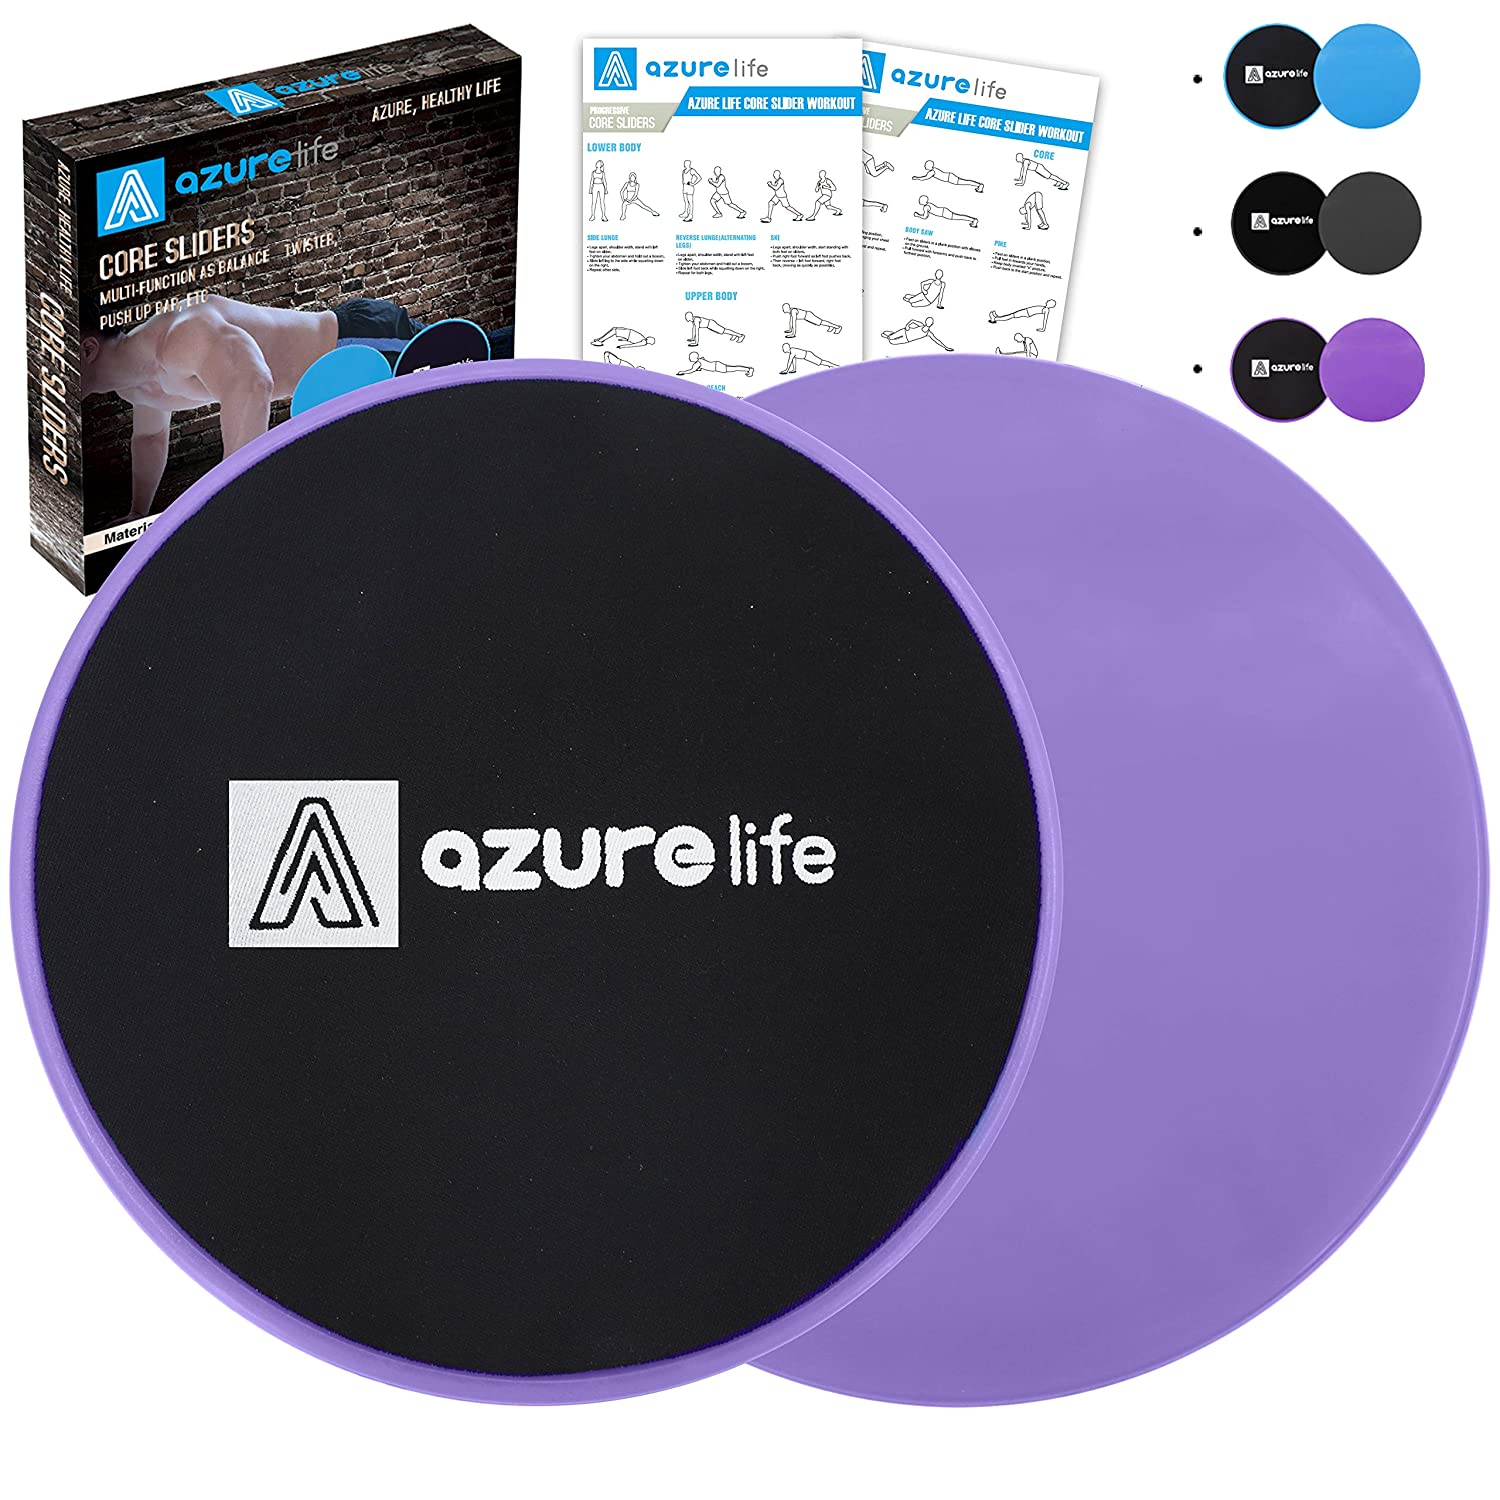 A AZURELIFE Exercise Core Sliders, 2 Pack Dual Sided Exercise Gliding Discs Use on All Surfaces, Light and Portable, Perfect for Abdominal Core Workouts